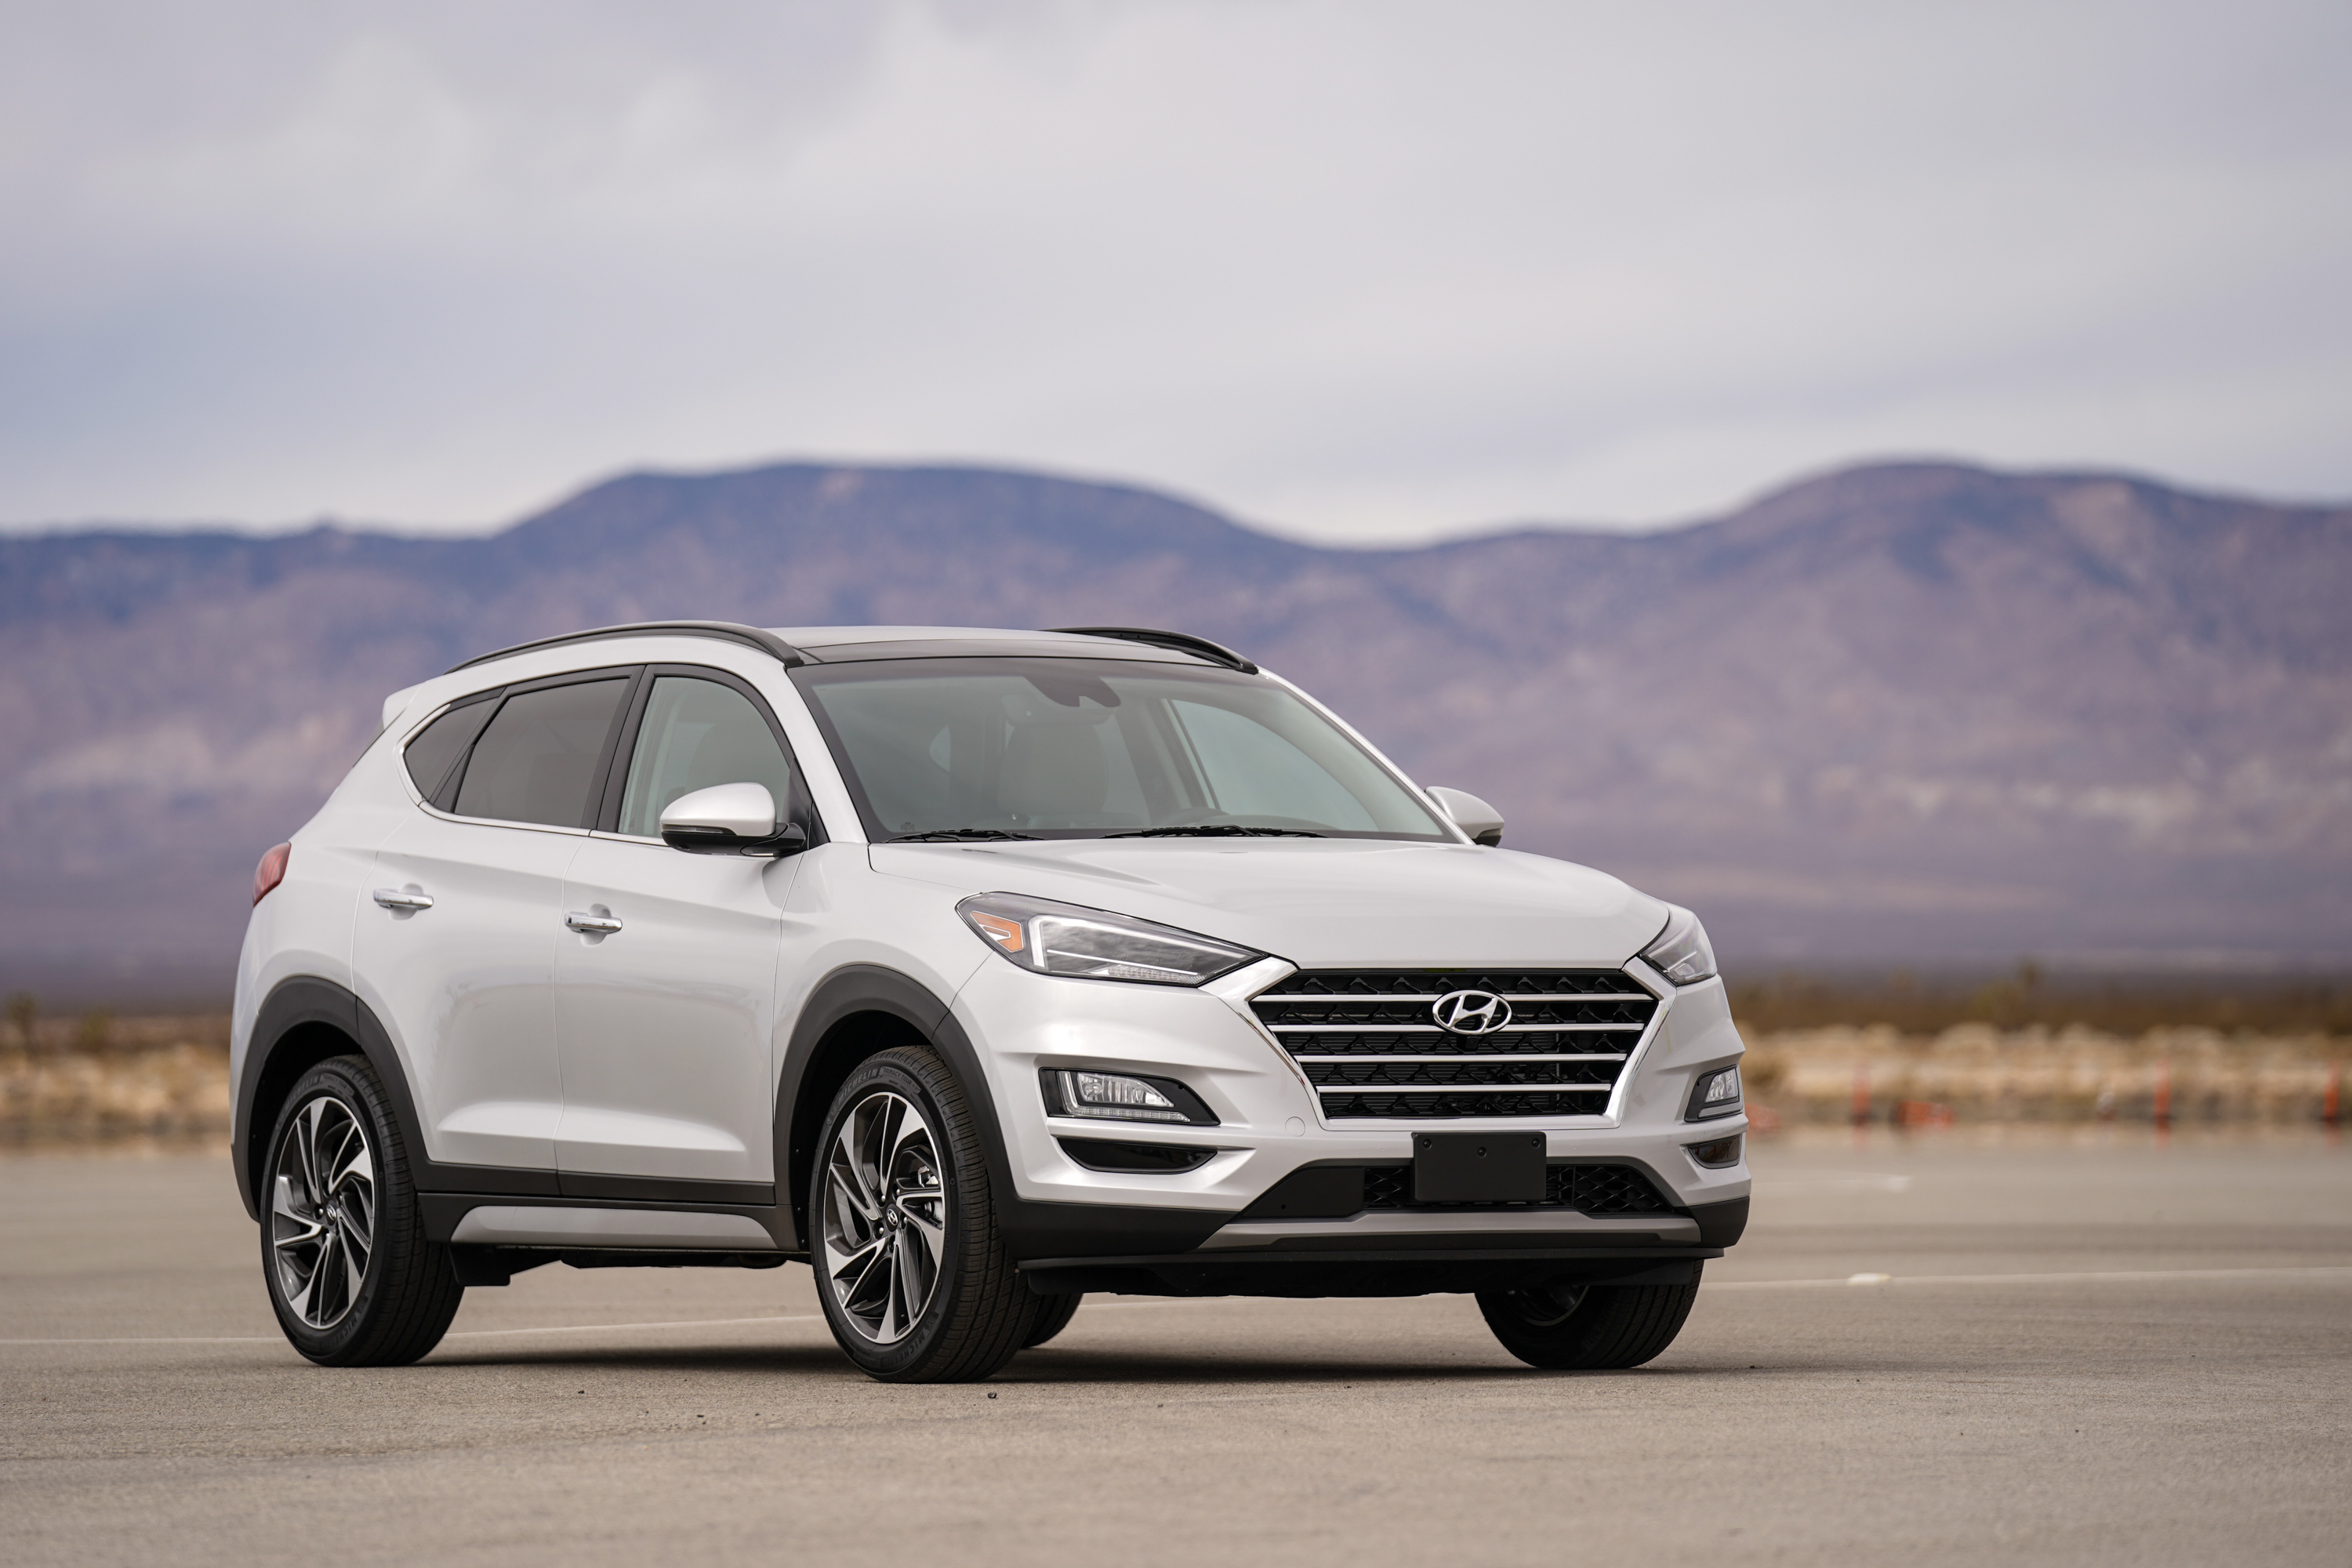 El Hyundai Tucson 2019 recibe la calificación TOP SAFETY PICK+ del IIHS